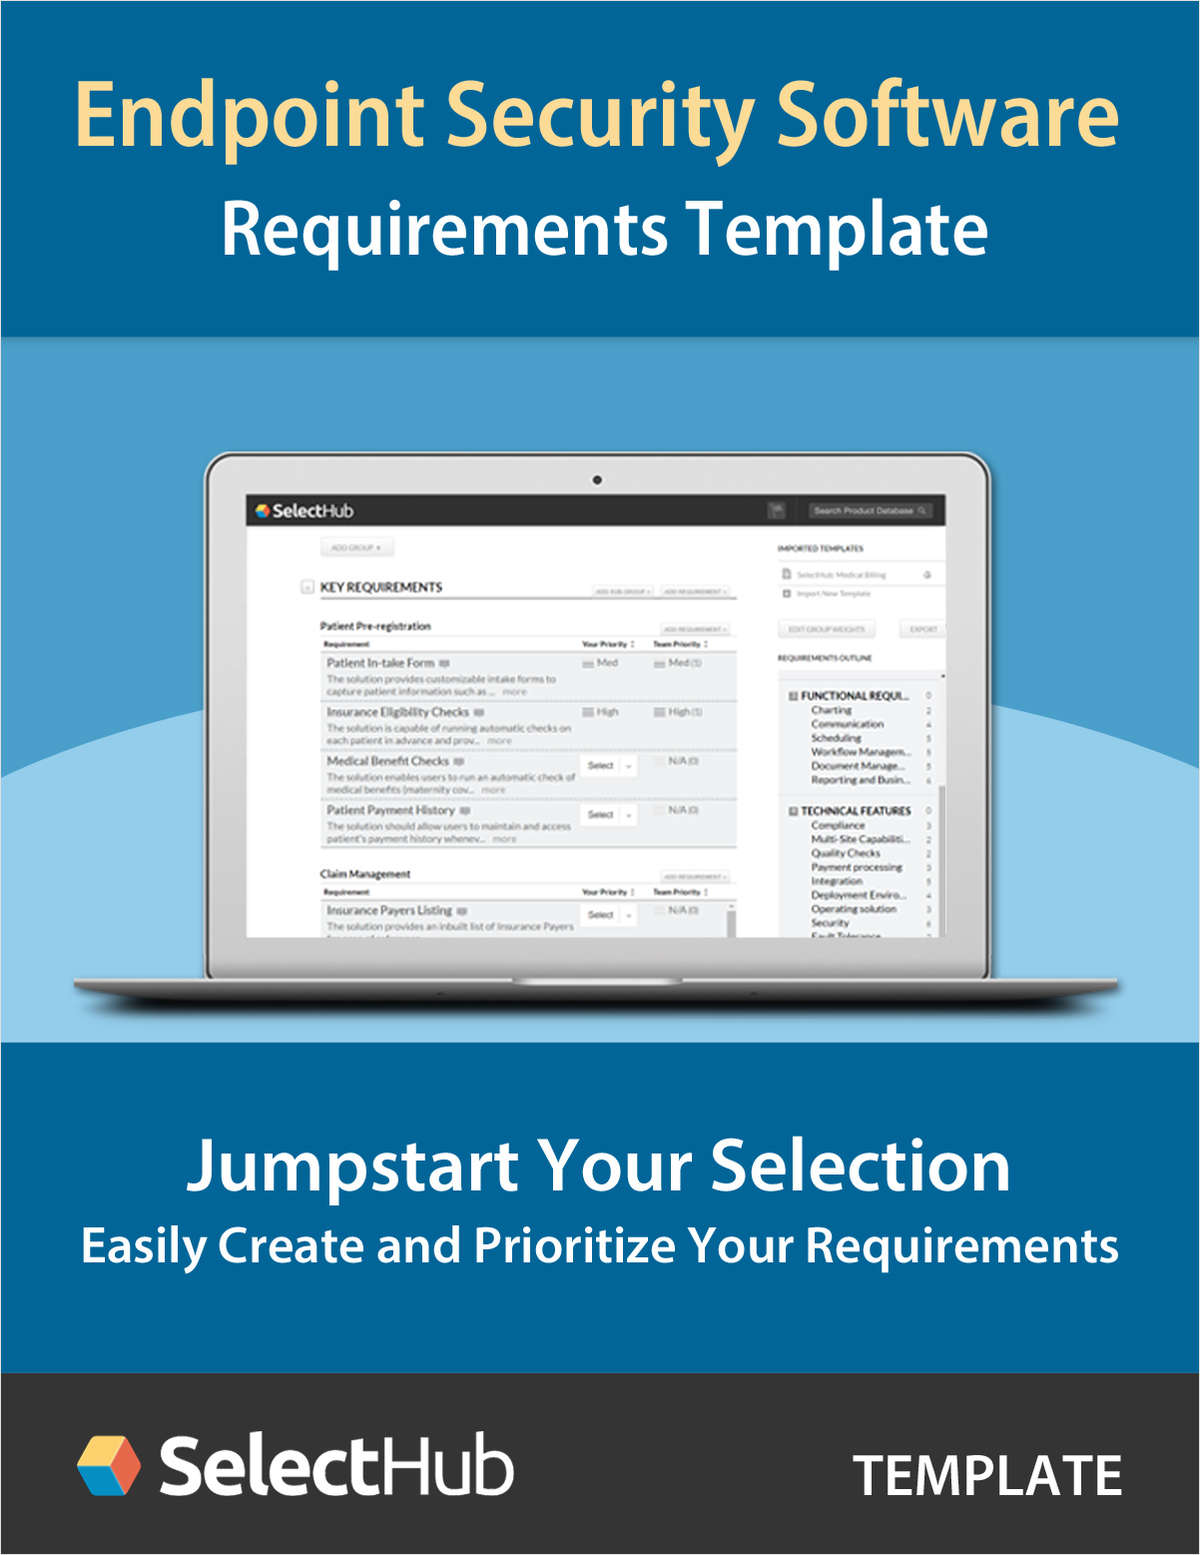 Endpoint Security Software Requirements Gathering Template